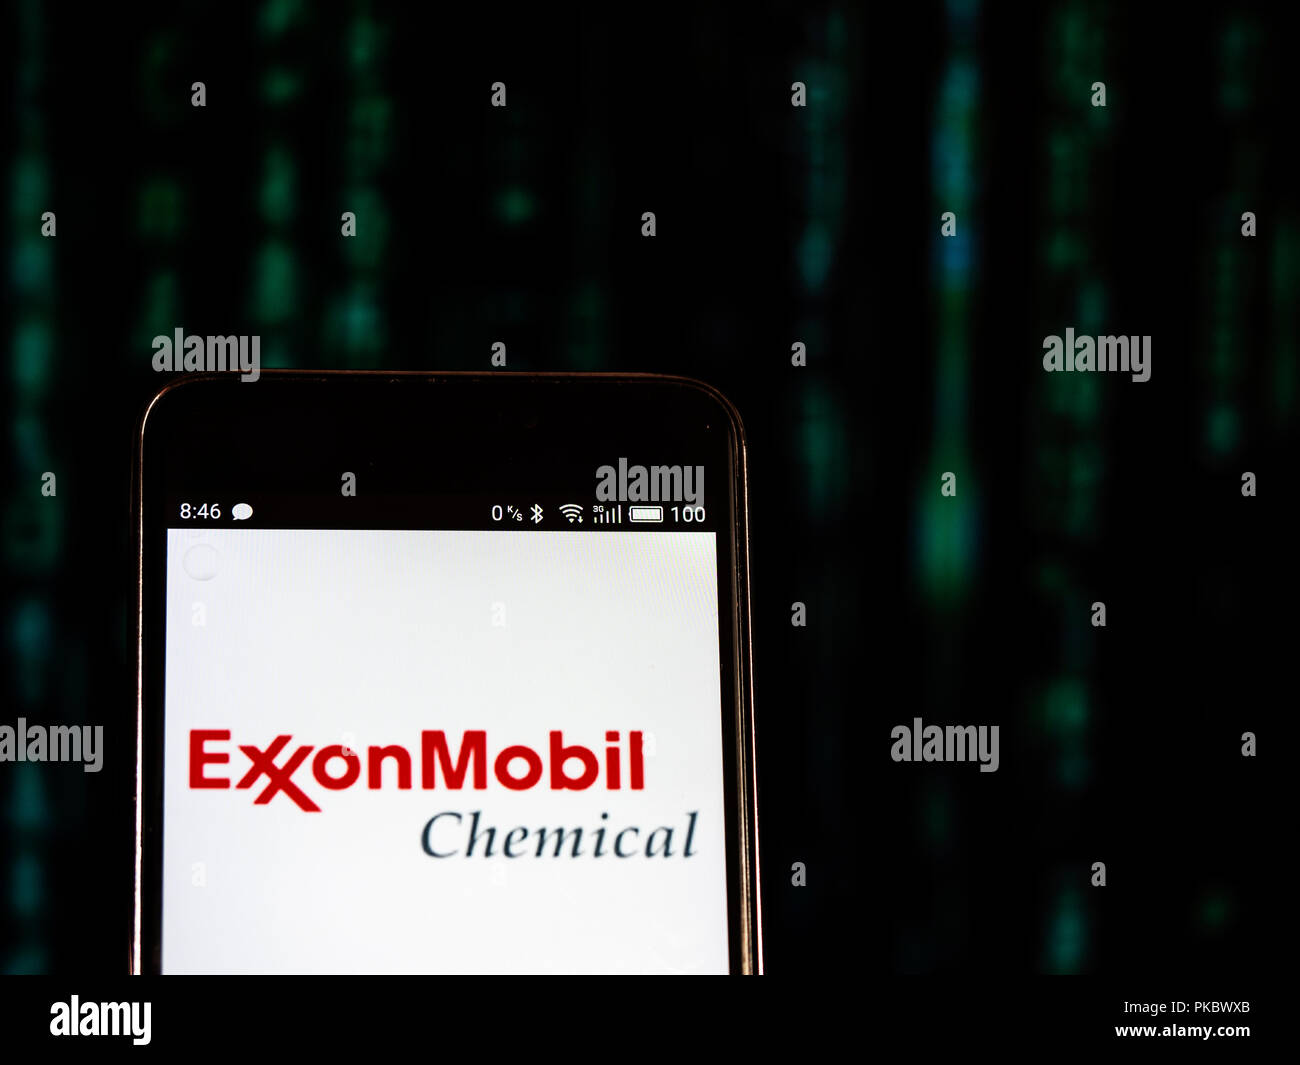 Exxon Mobil logo seen displayed on smart phone - Stock Image